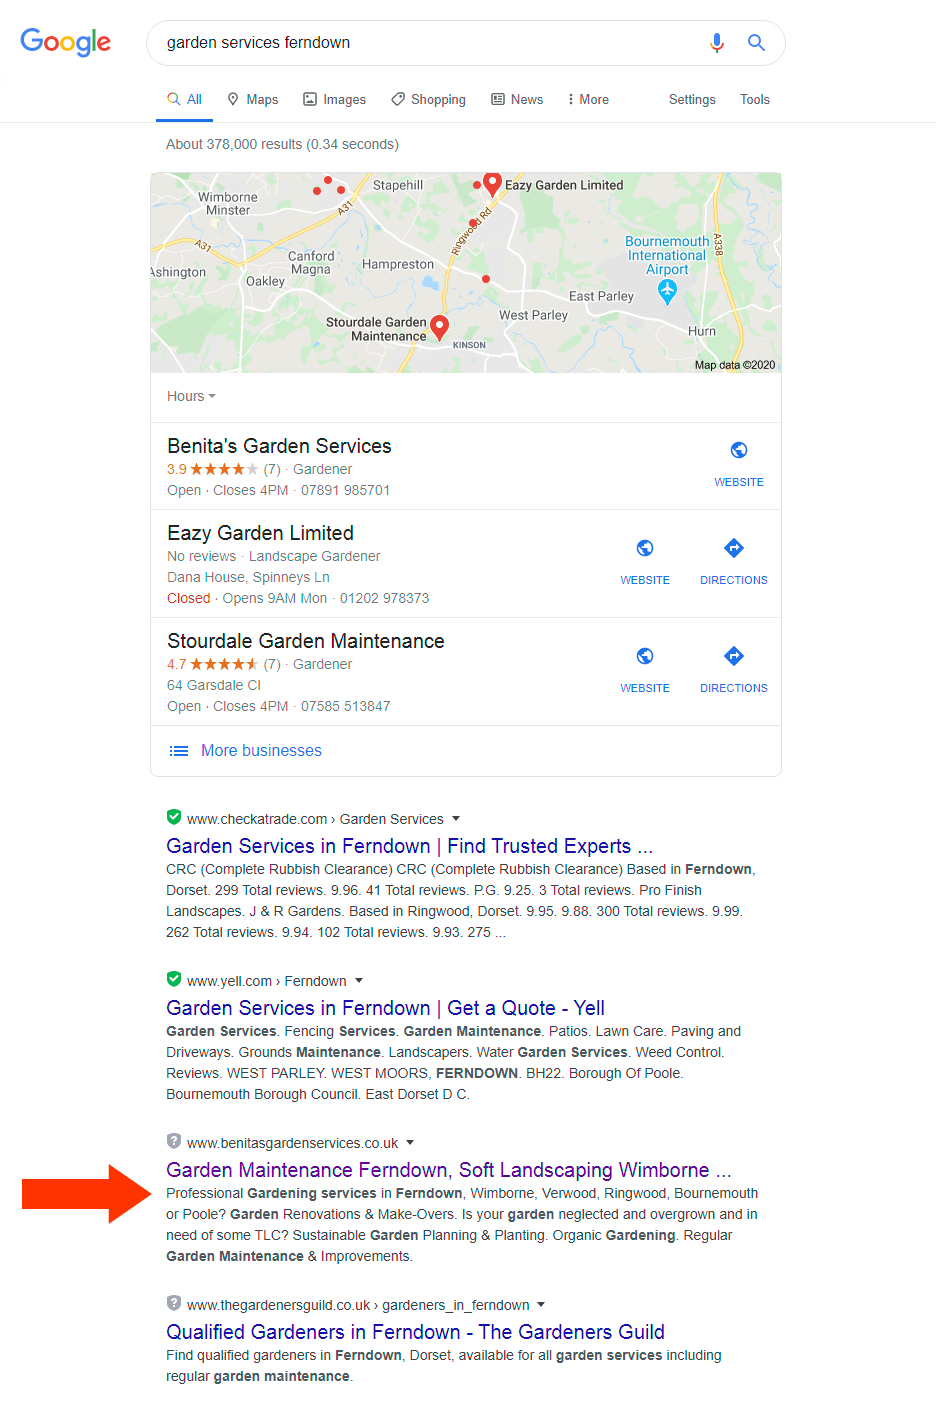 Google SEO results for garden services ferndown.